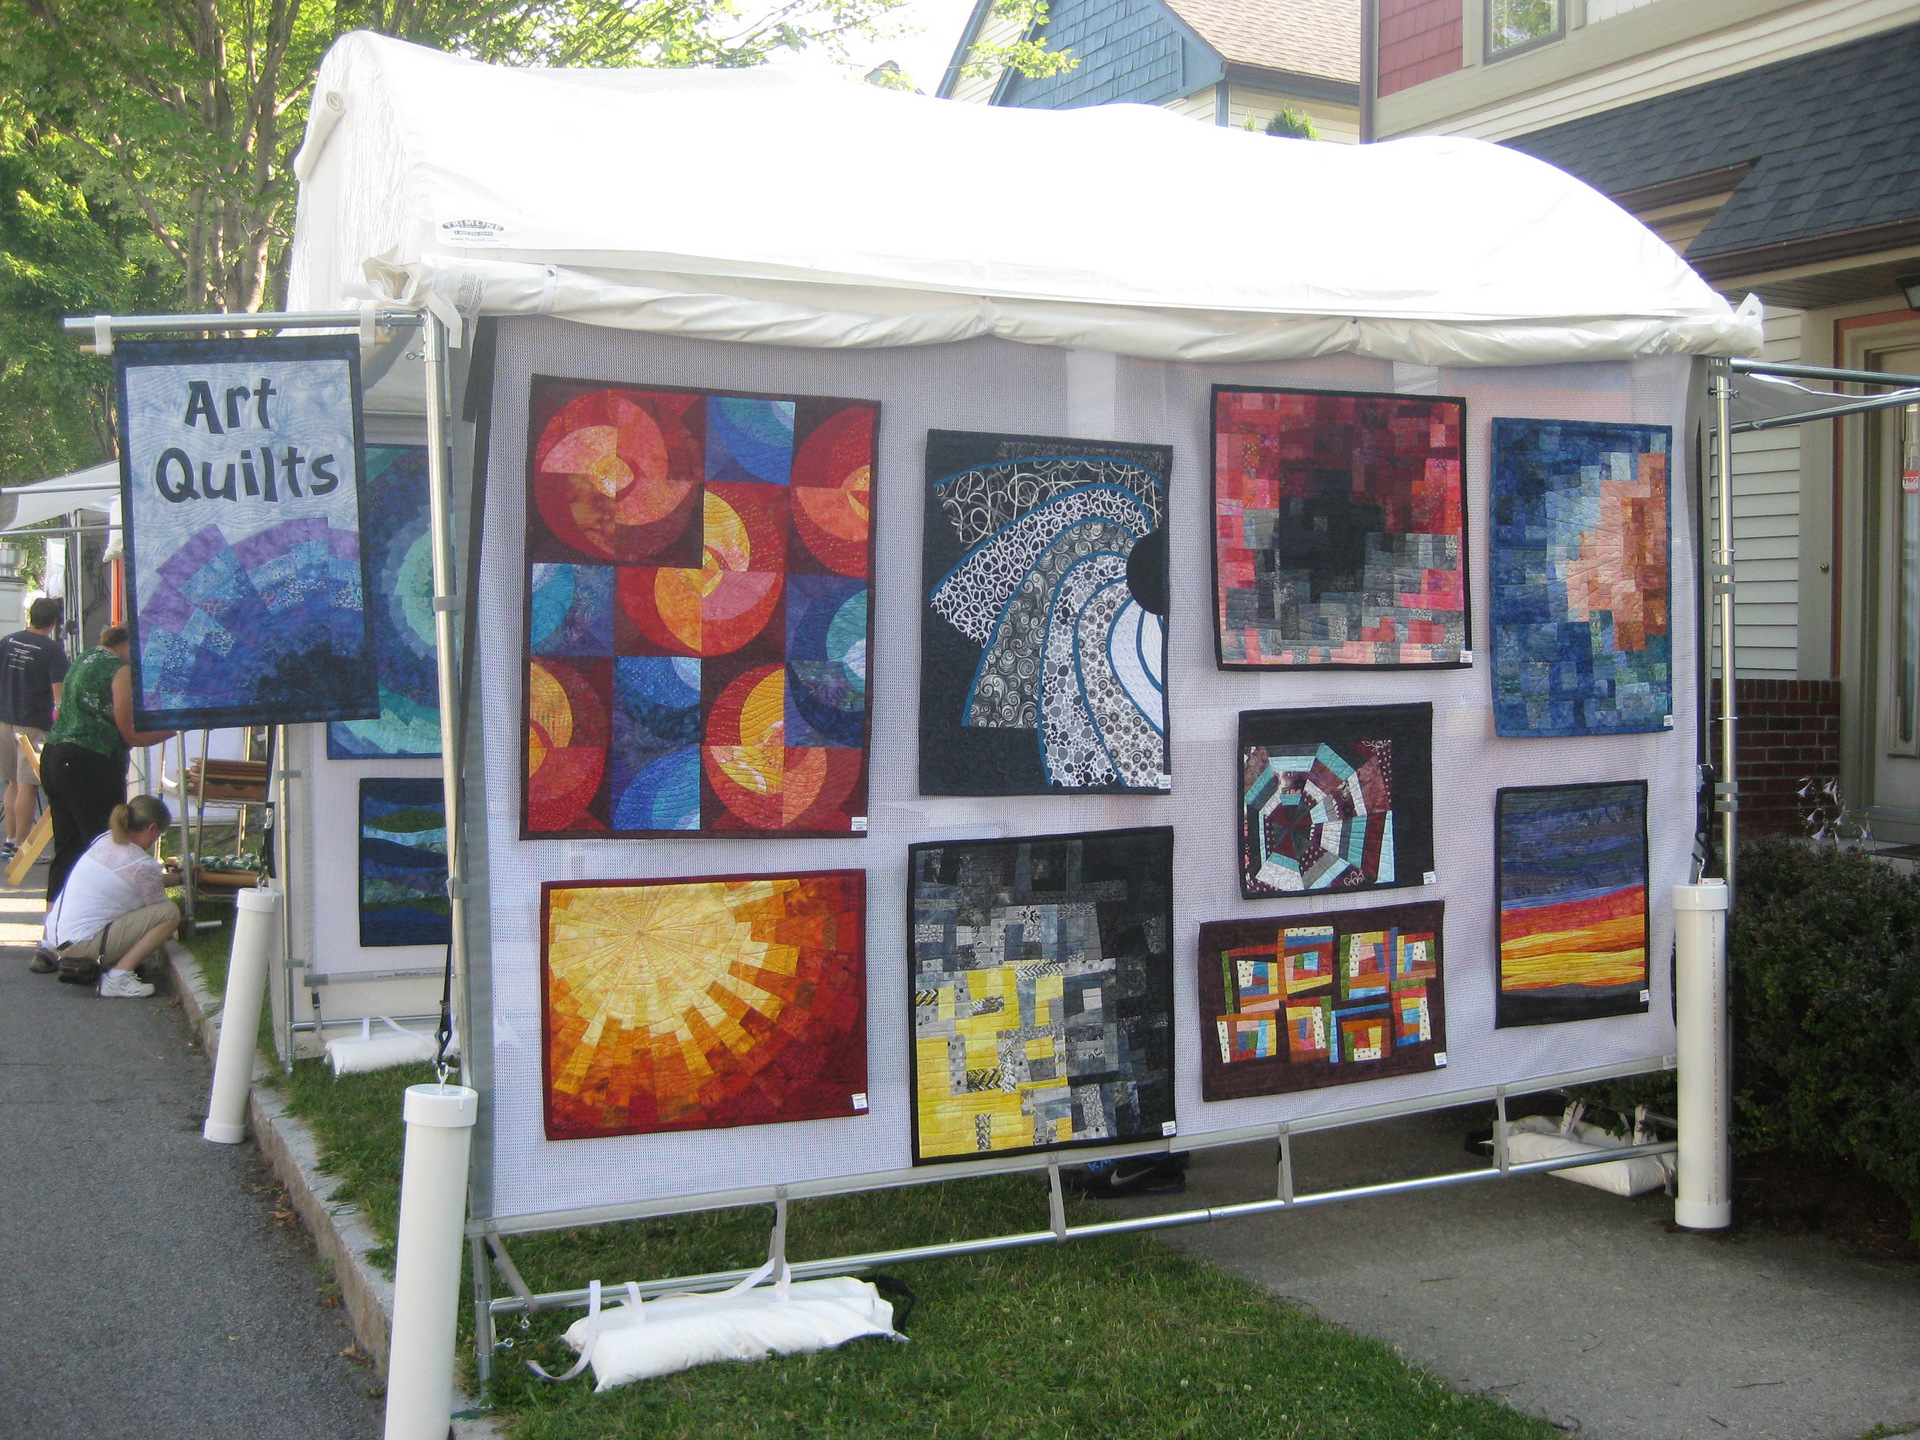 Art booth at Corn Hill Festival in Rochester